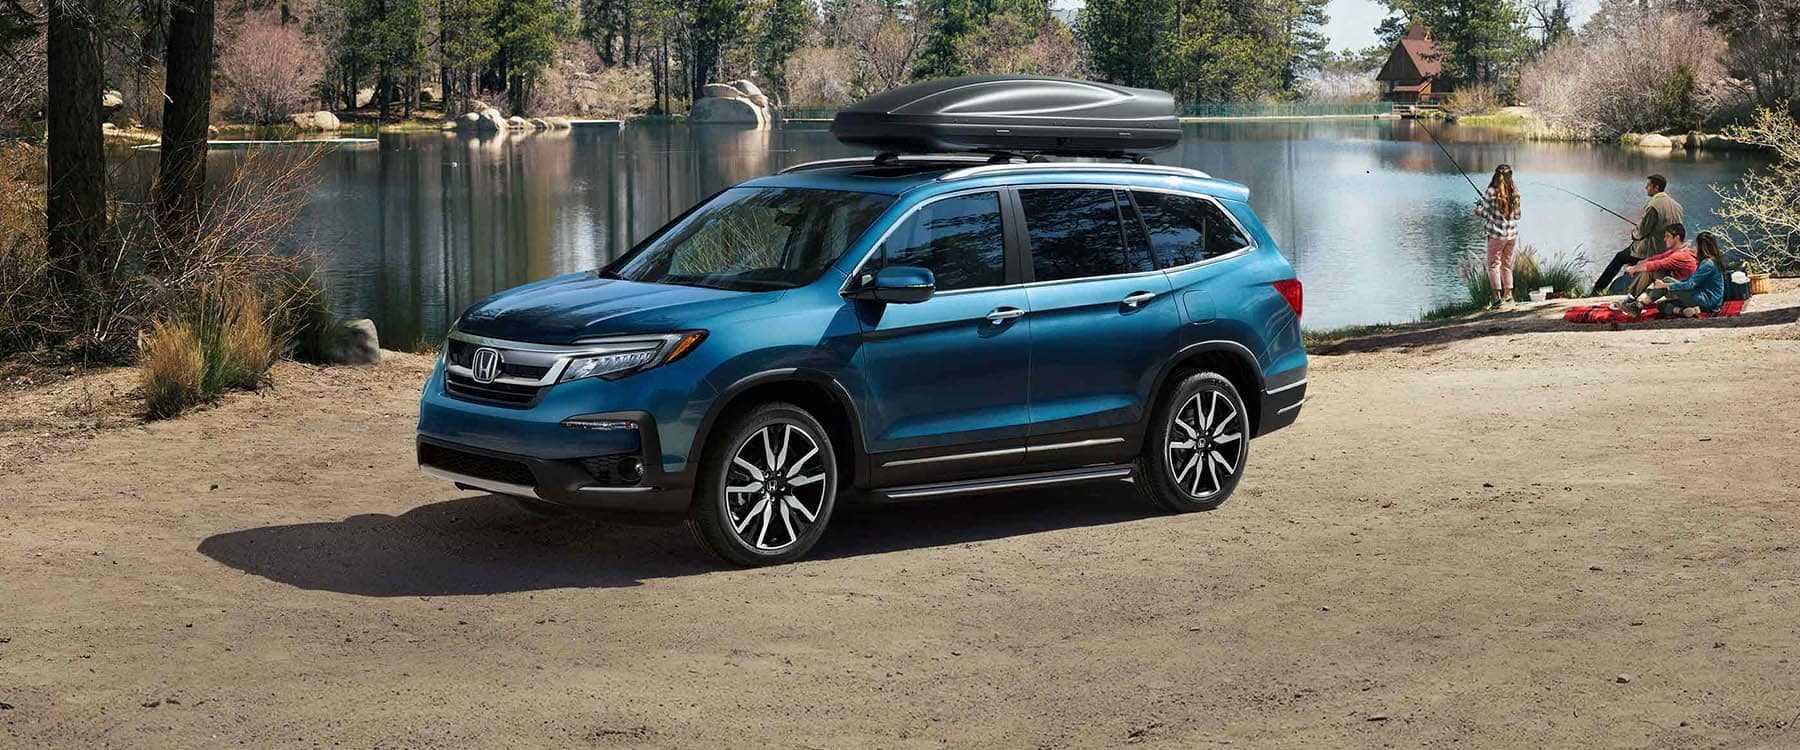 2019 Honda Pilot Parked at Lake with Family Fishing